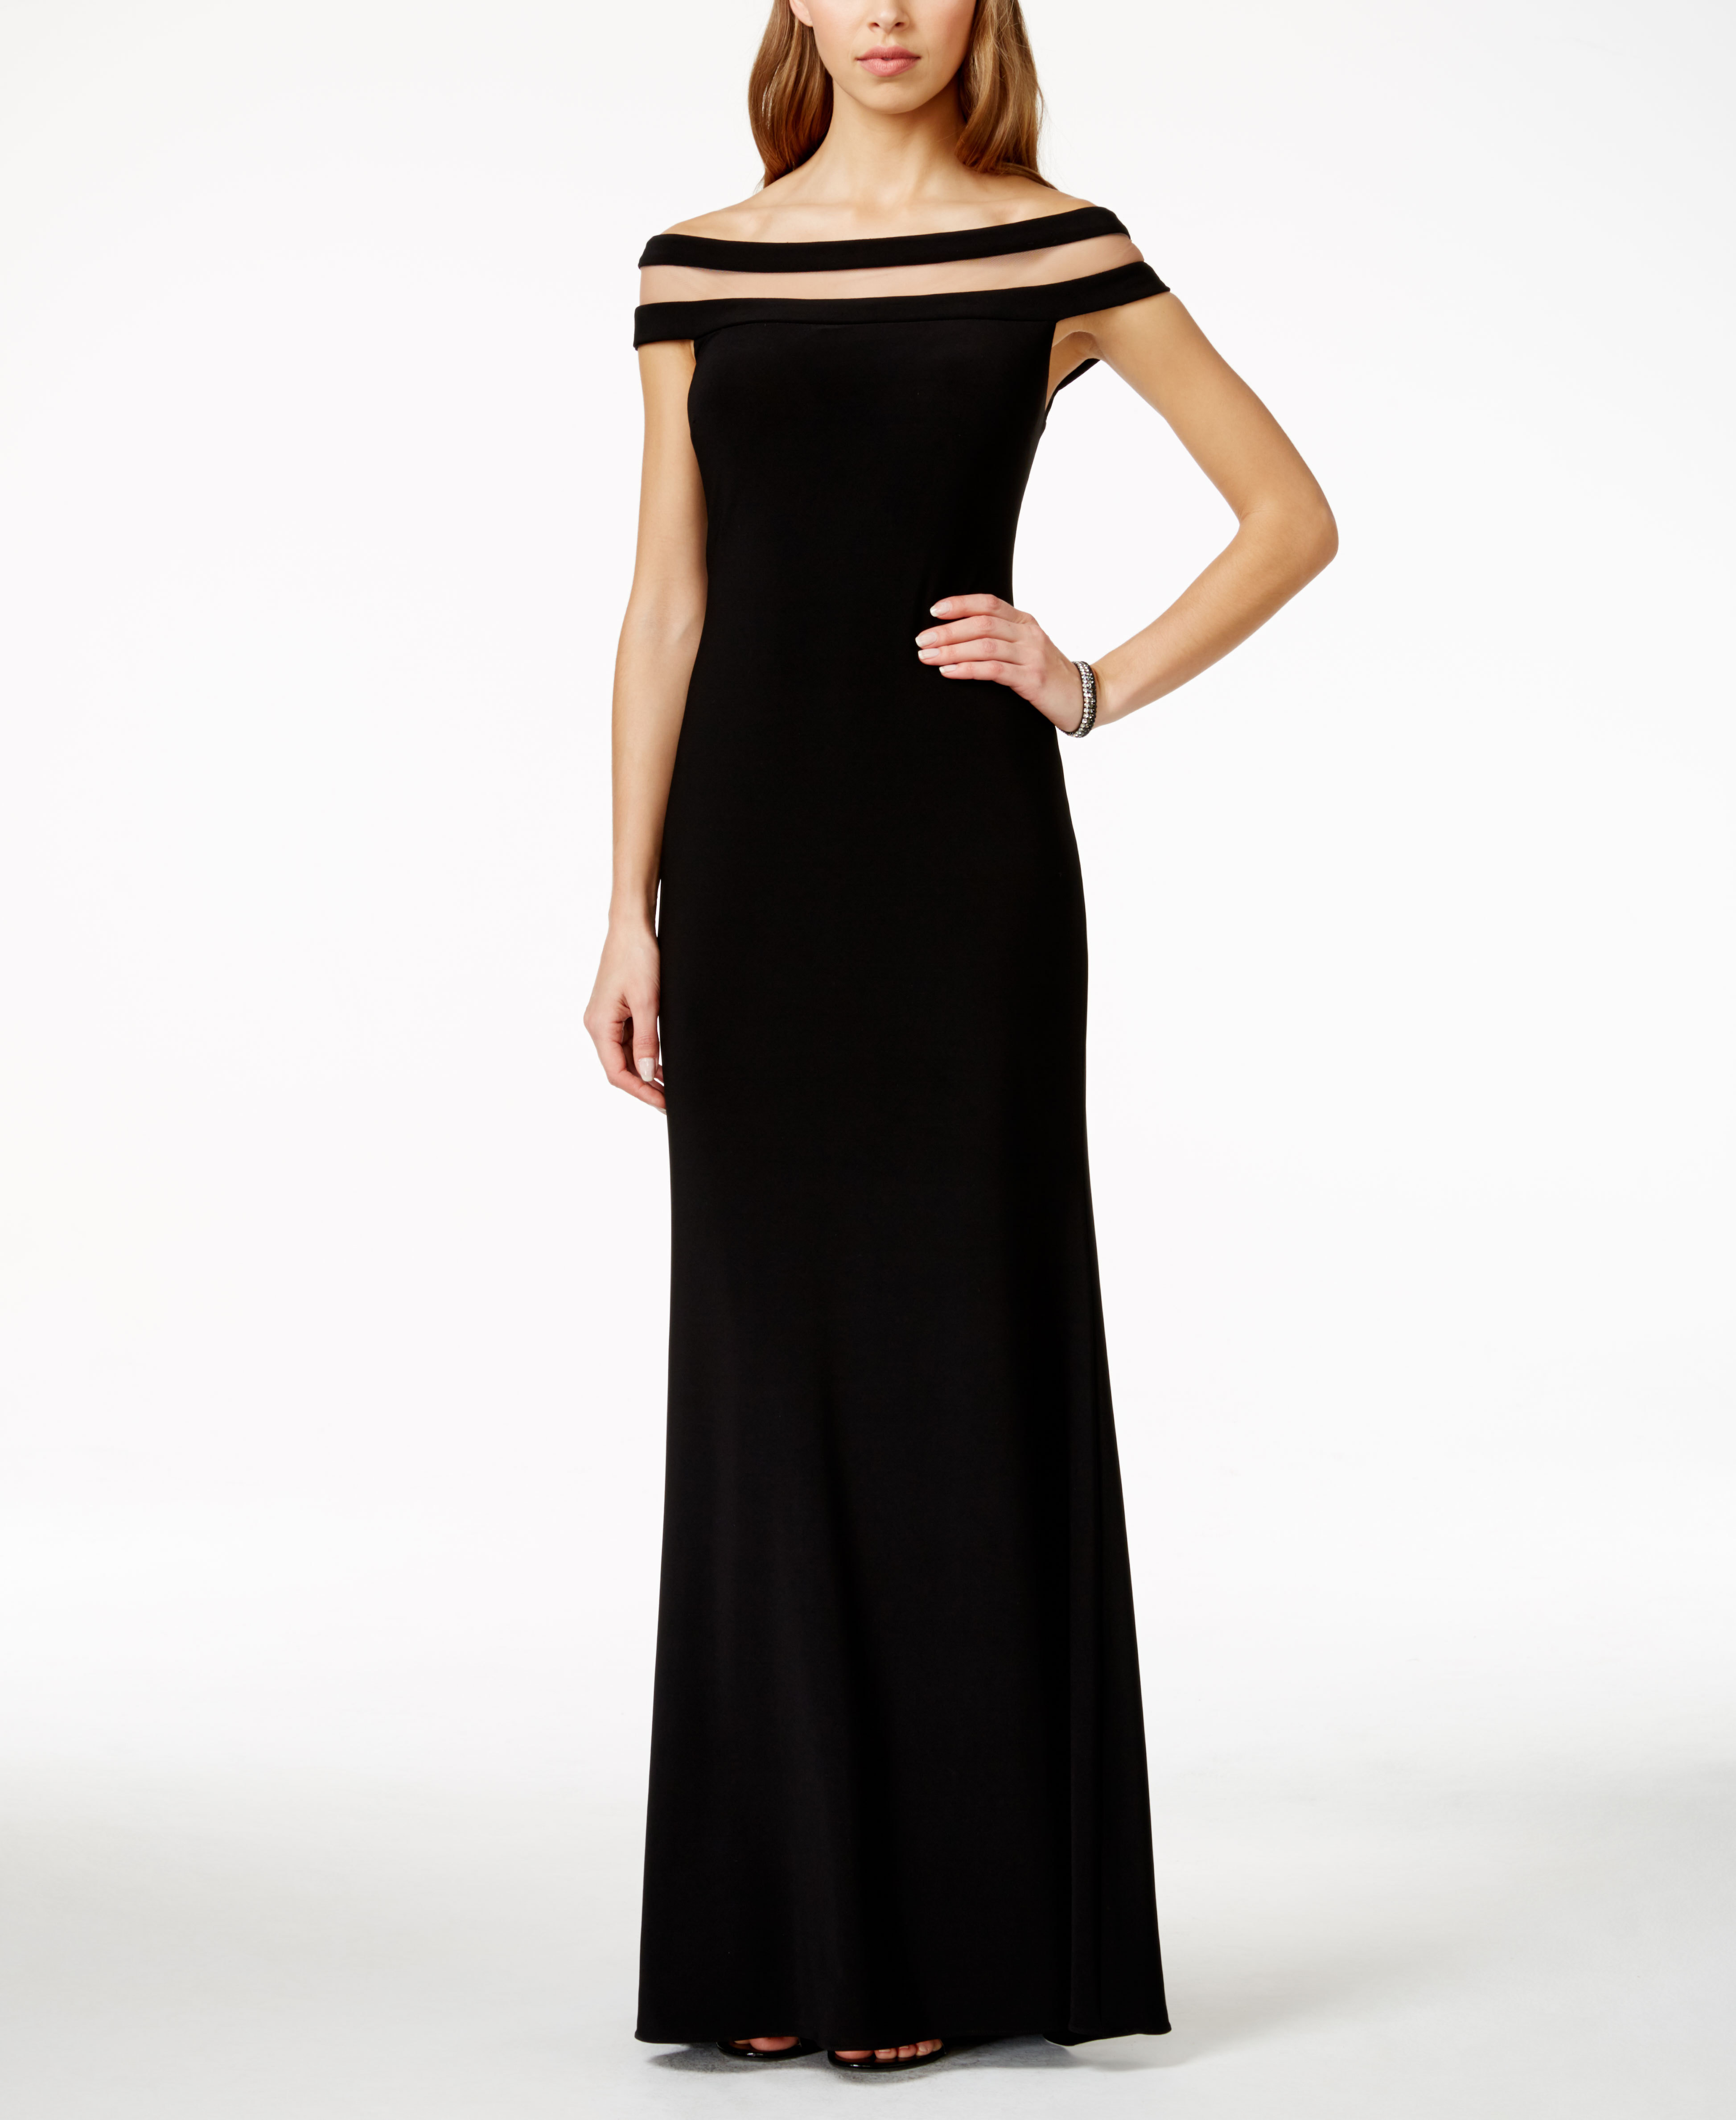 Macy's Makes Every Girl Shine Bright This Prom Season | Business Wire